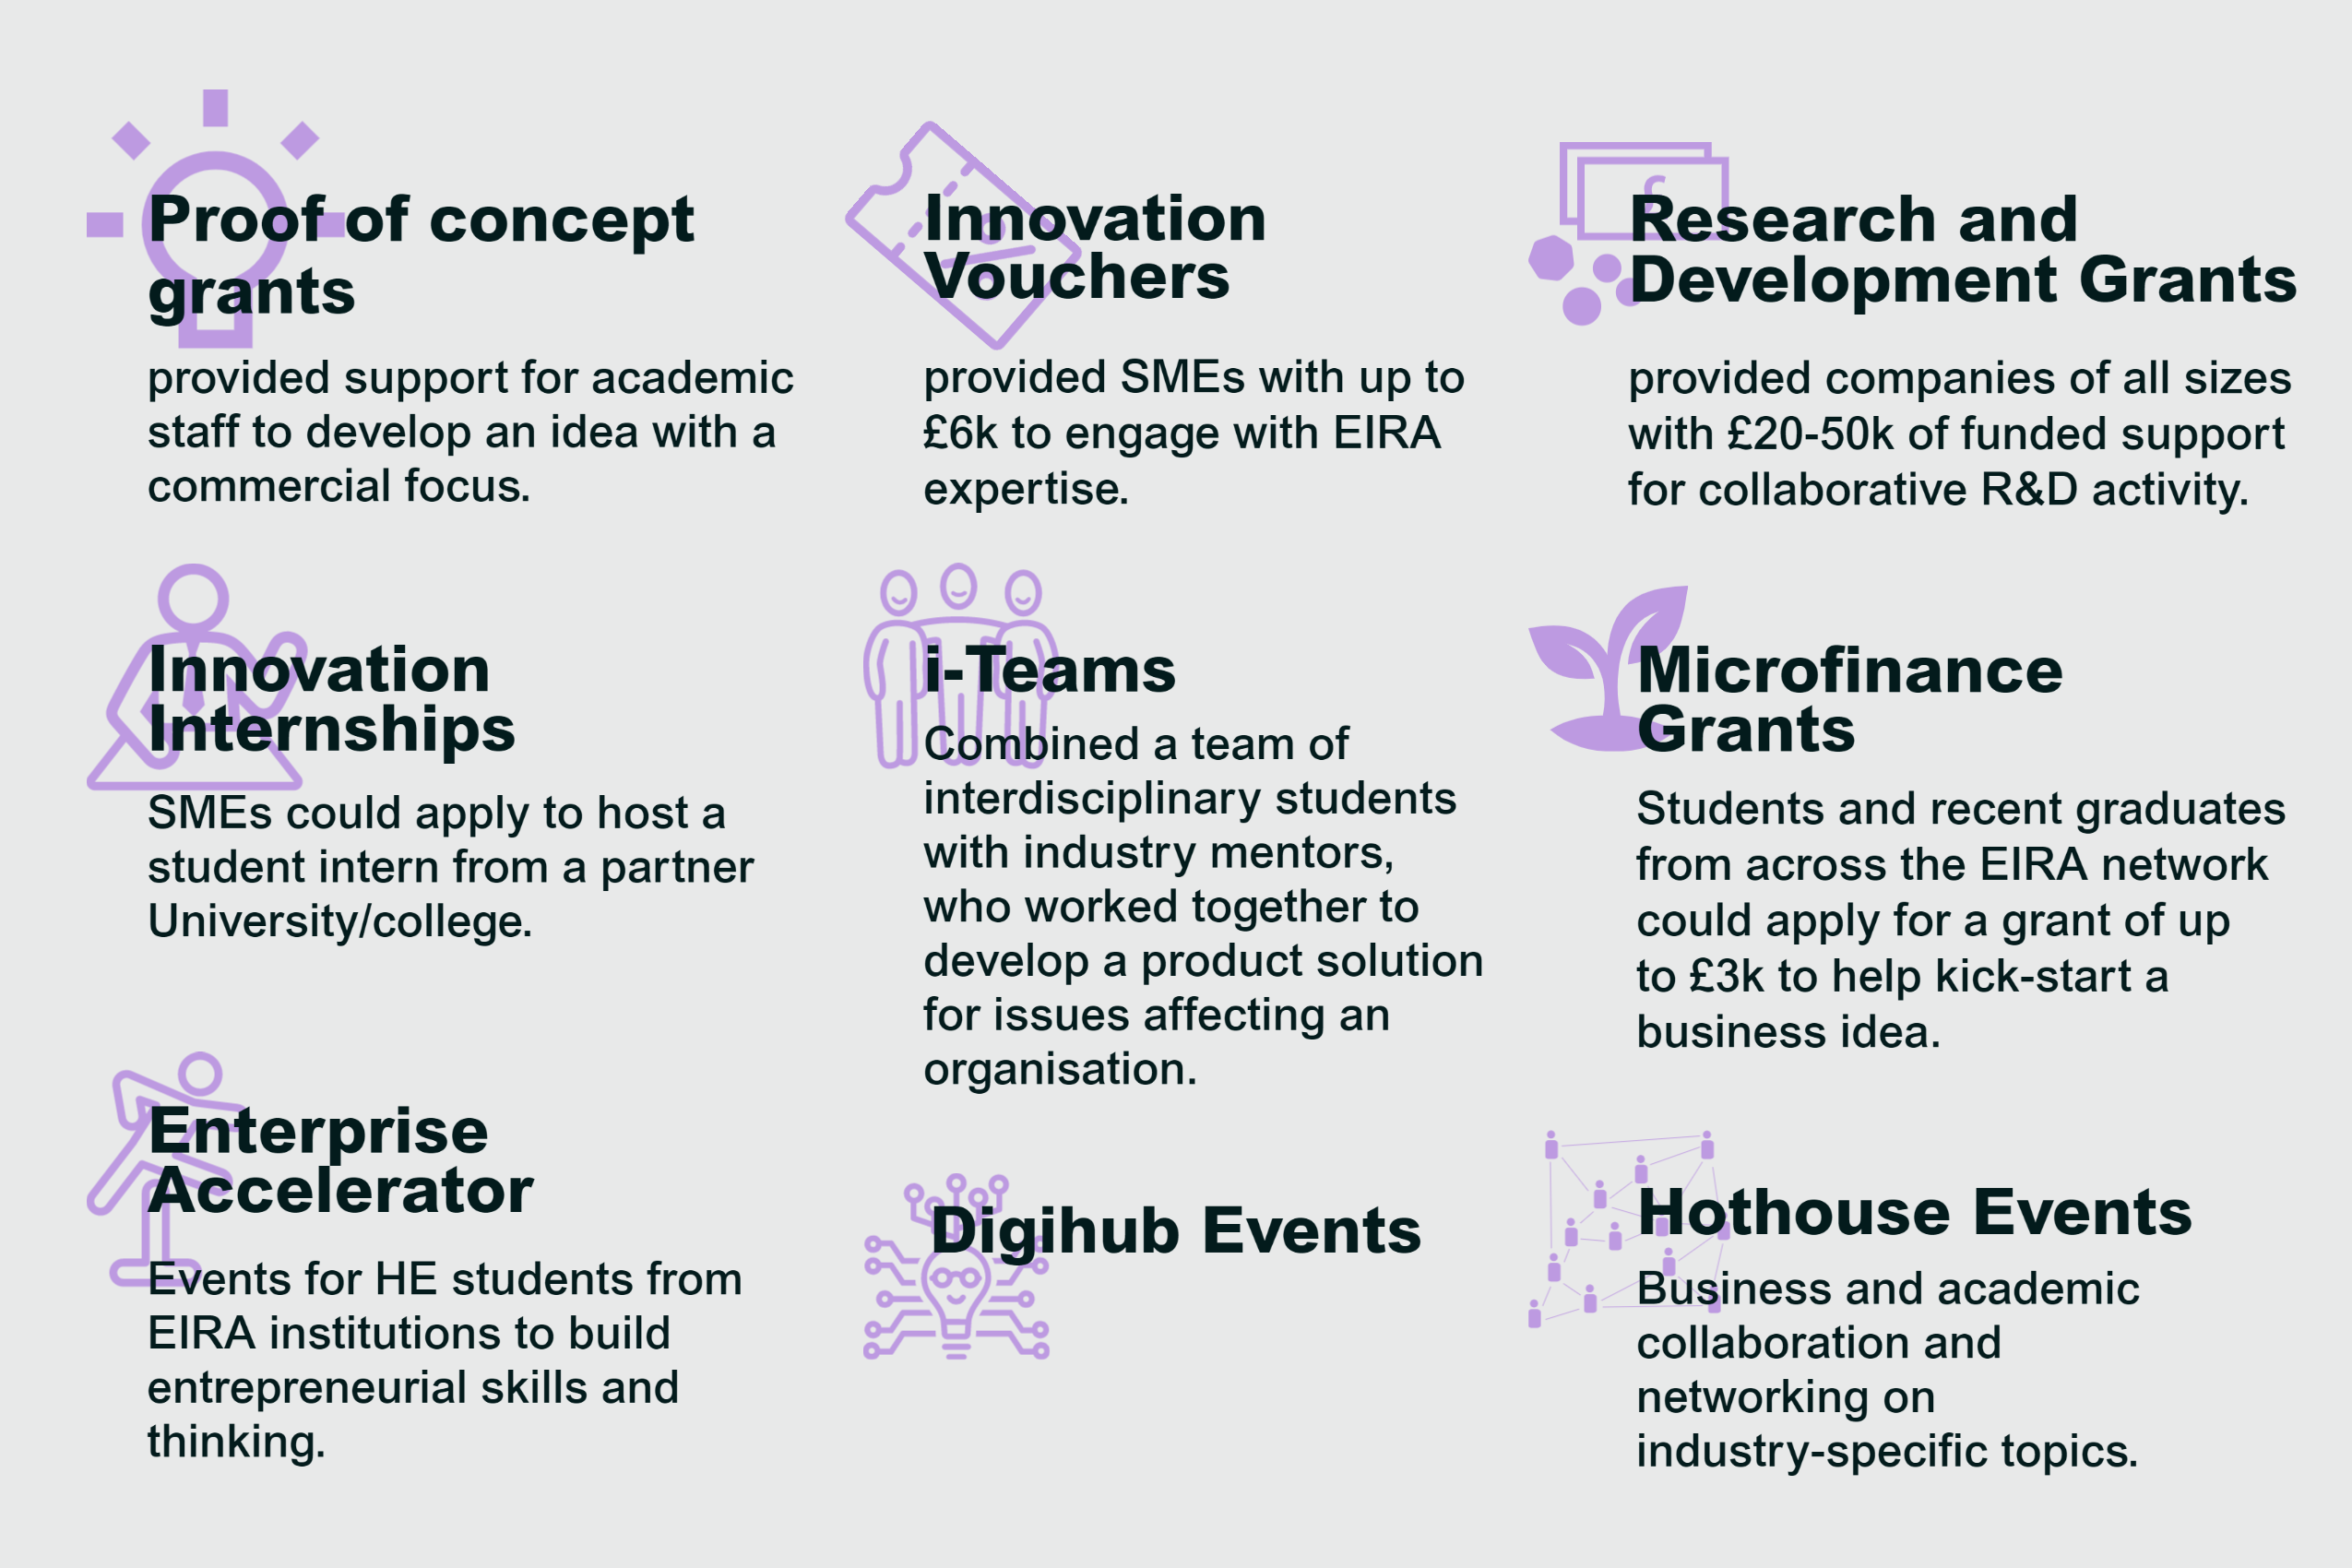 An inforgraphic listing the 9 EIRA interventions: proof of concept grants, innovation vouchers, research and development grants, innovation internships, i-Teams, microfinance grants, enterprise accelerator, digihub events and hothouse events.